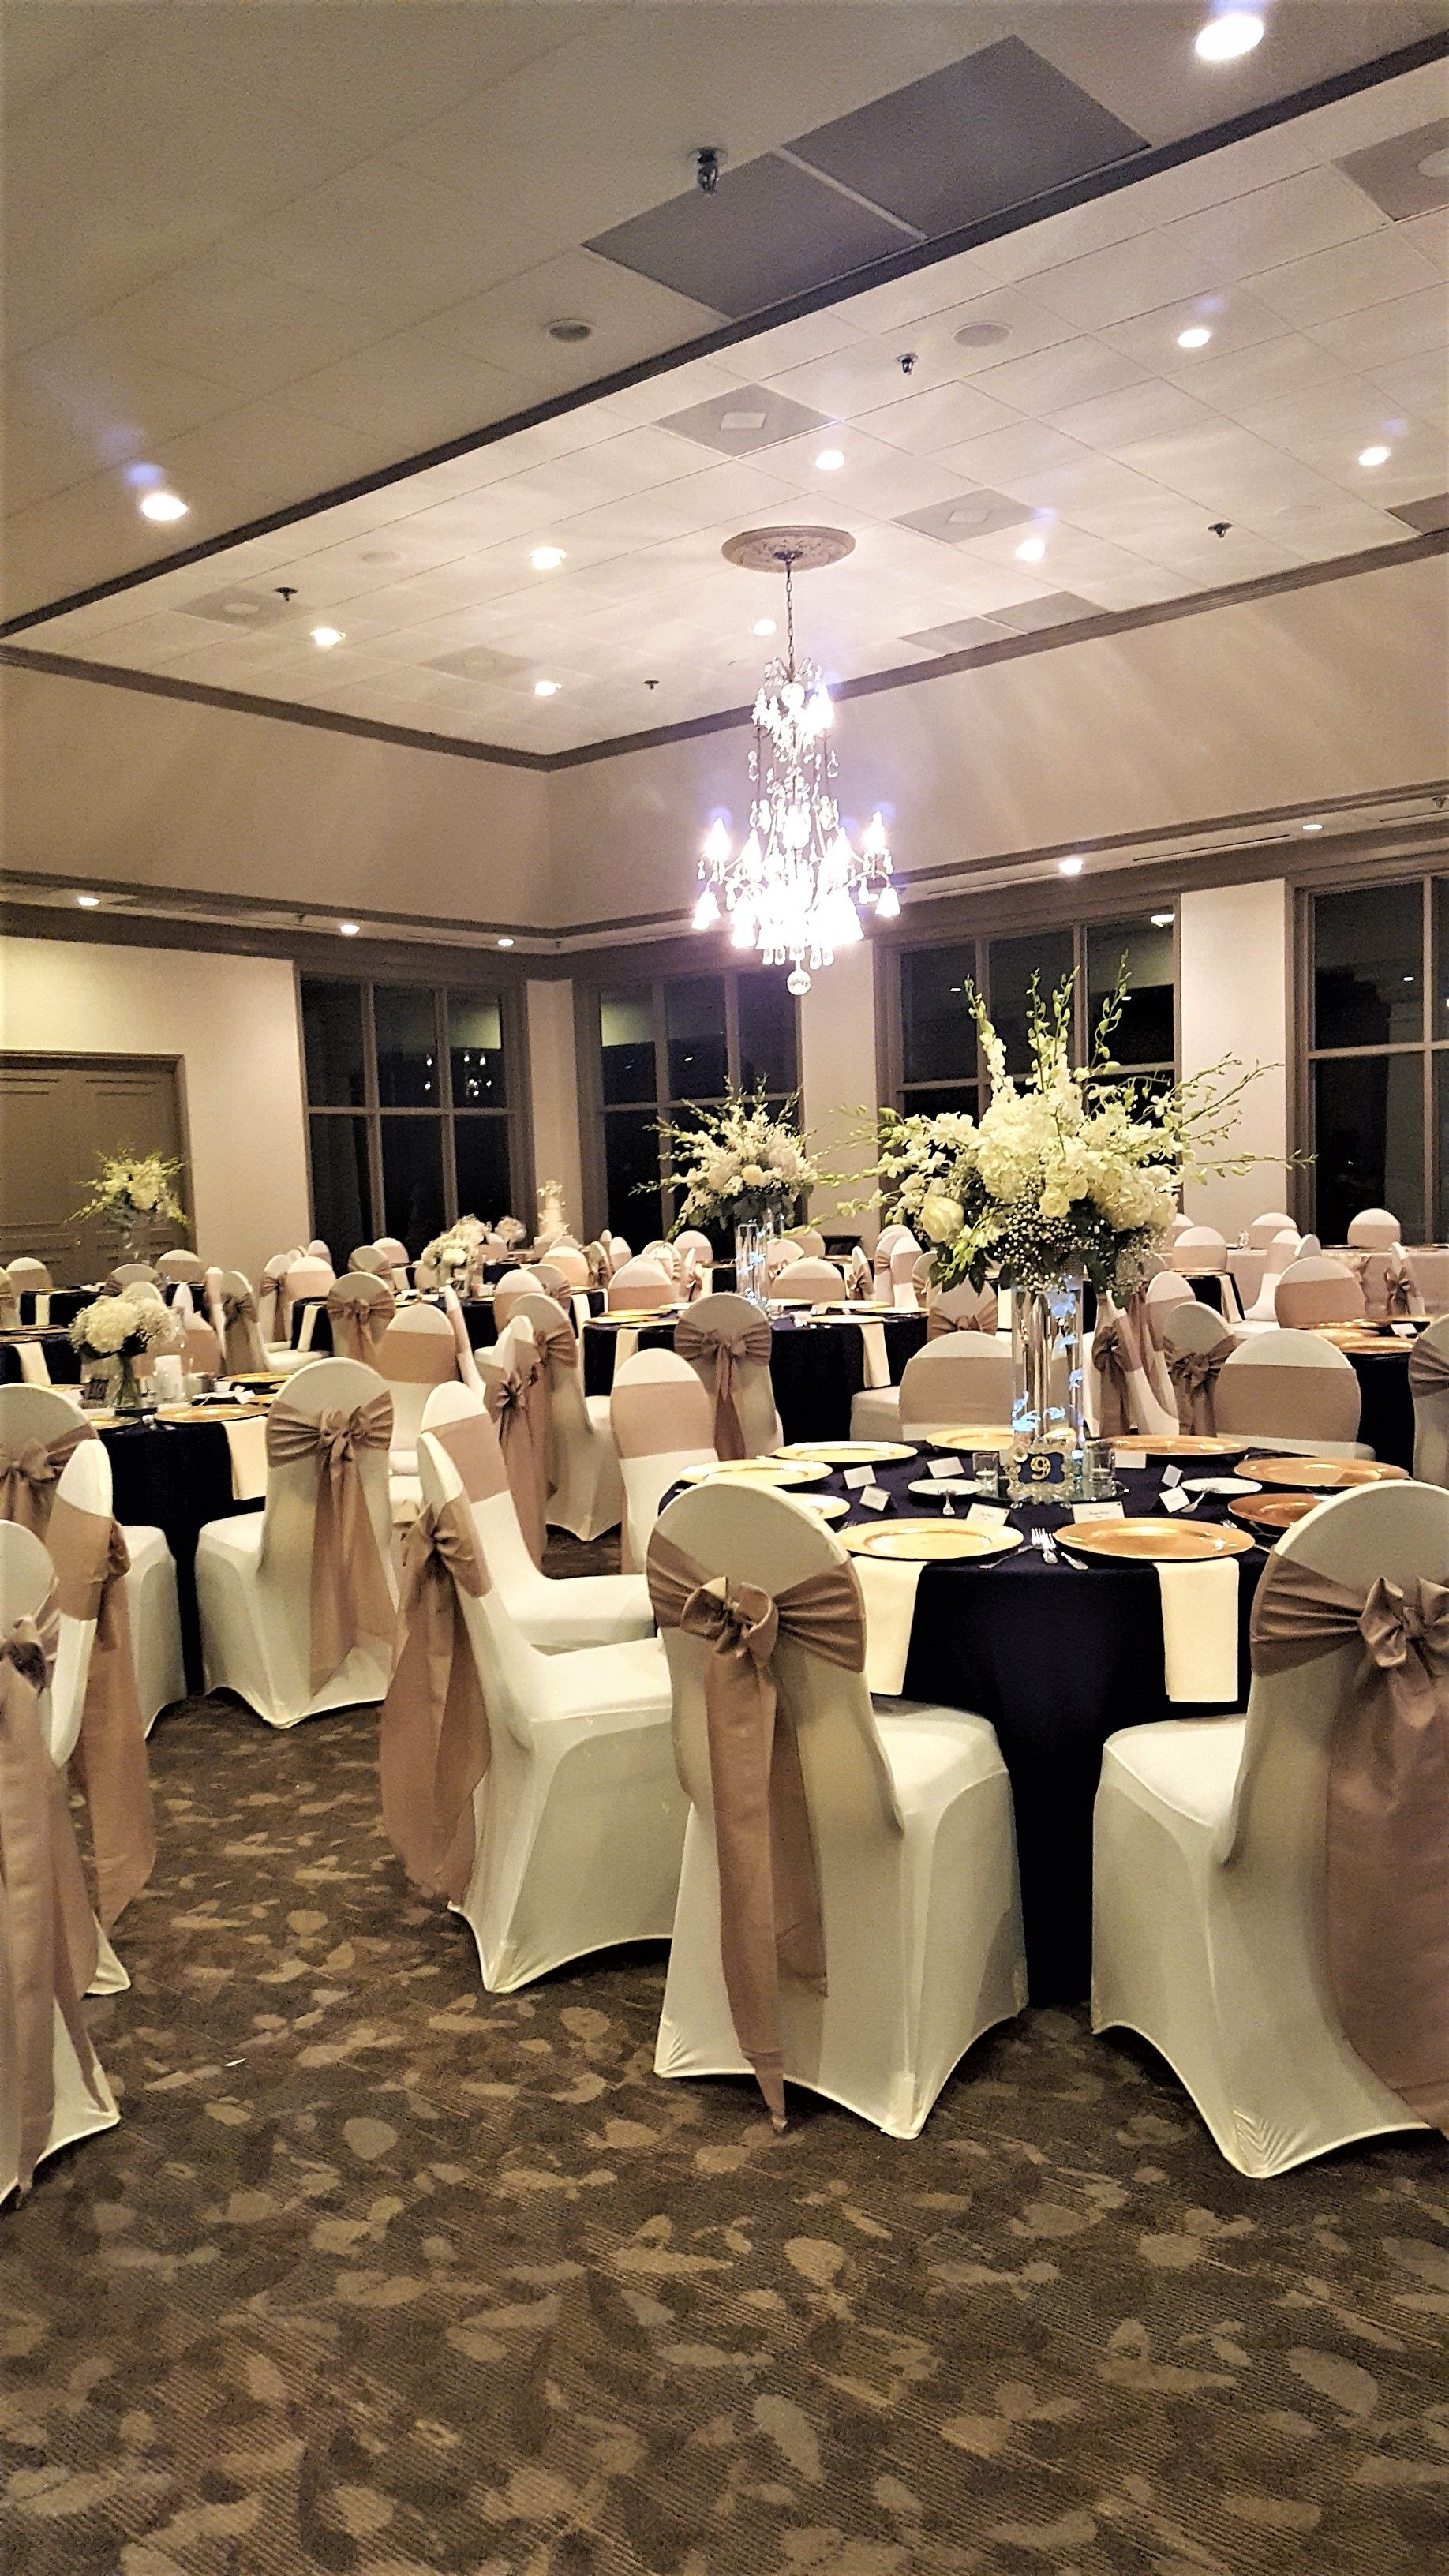 gold chair covers with black sash desk uk sale wedding reception ivory spandex sashes linens in the ballroom at sugar creek country club chaircovers